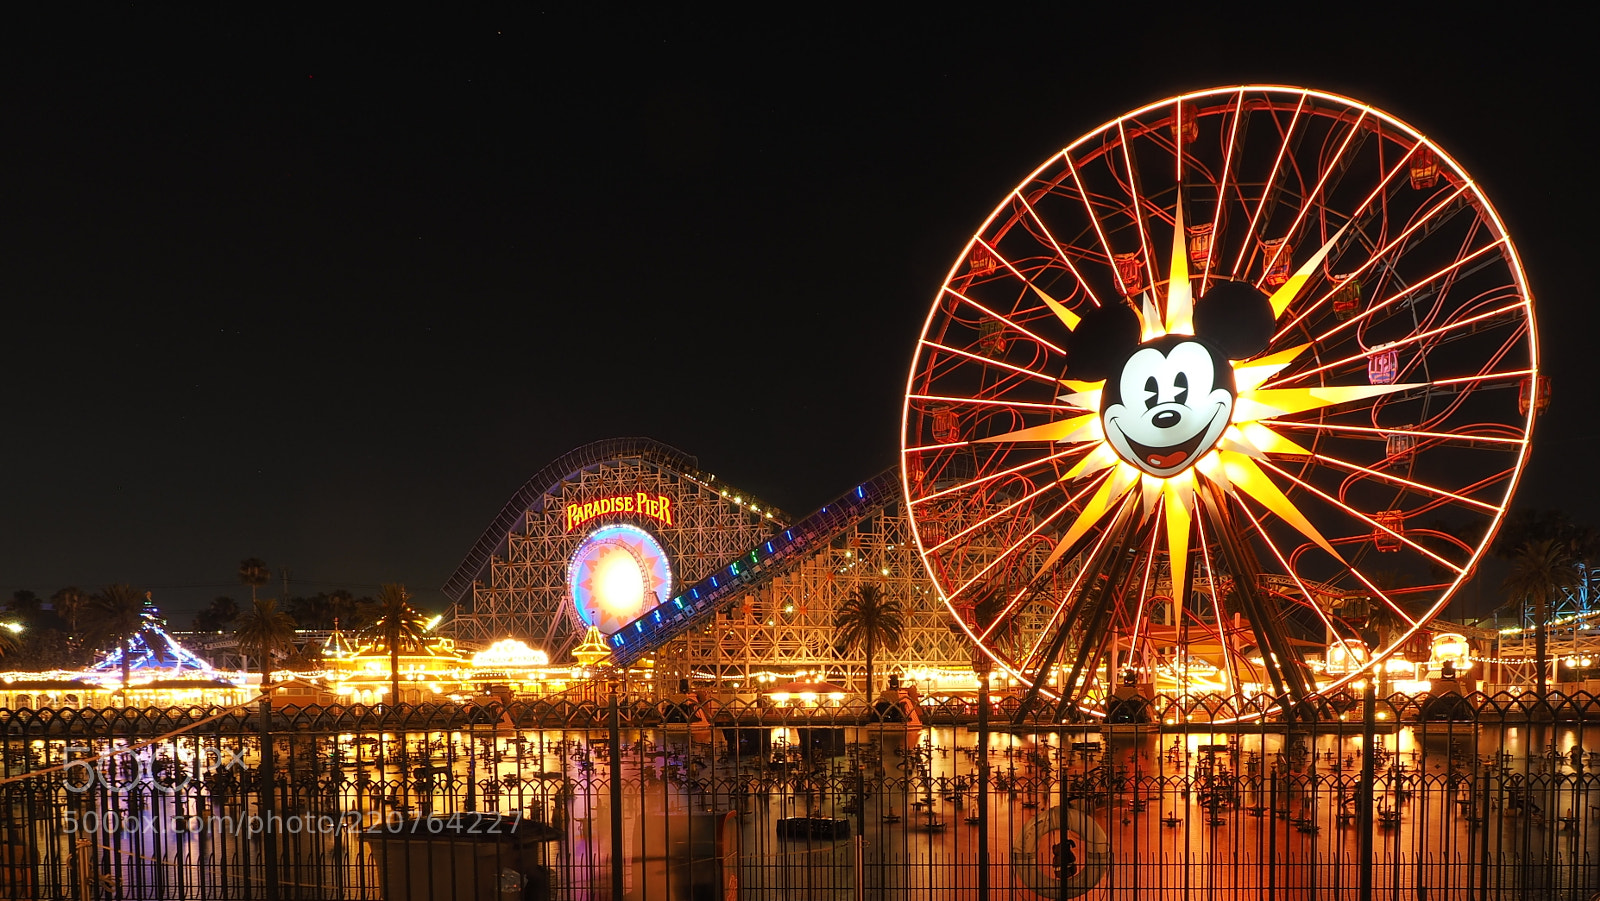 Paradise Pier at California aventure by night